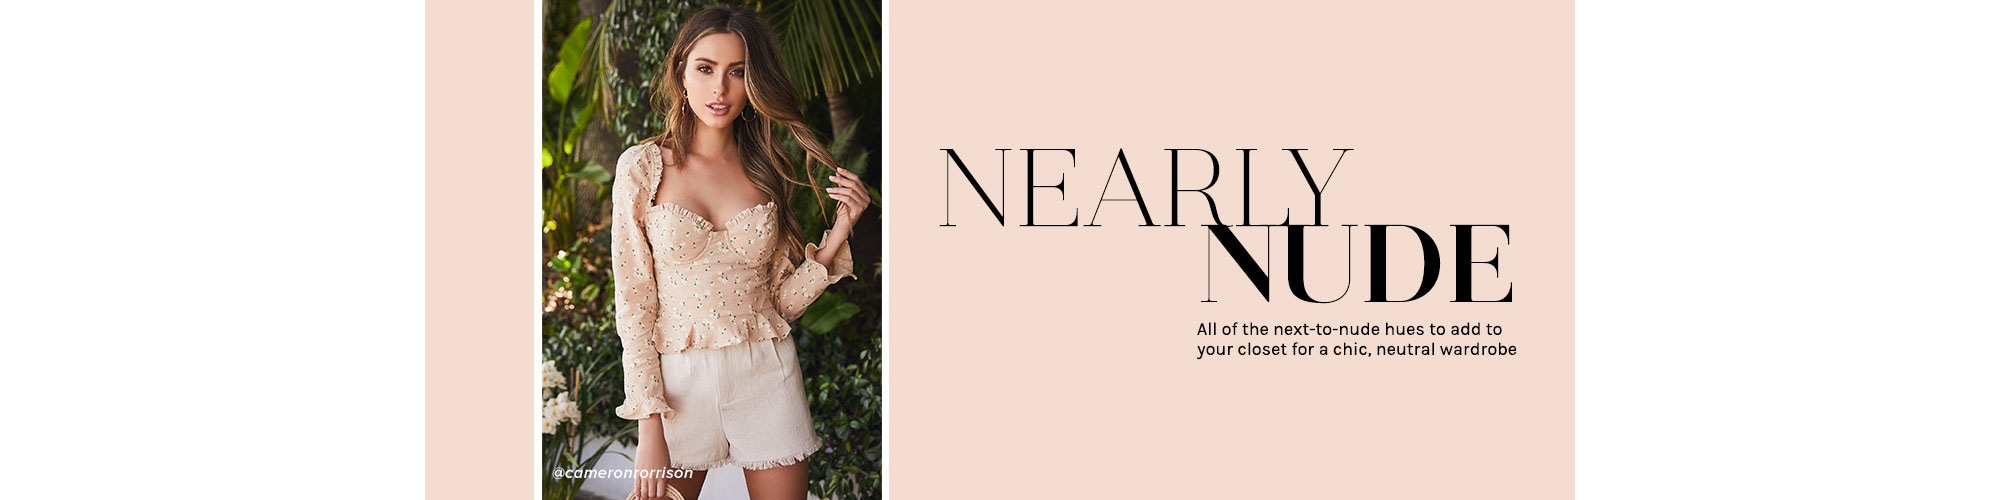 Nearly Nude. All of the next-to-nude hues to add to your closet for a chic, neutral wardrobe.